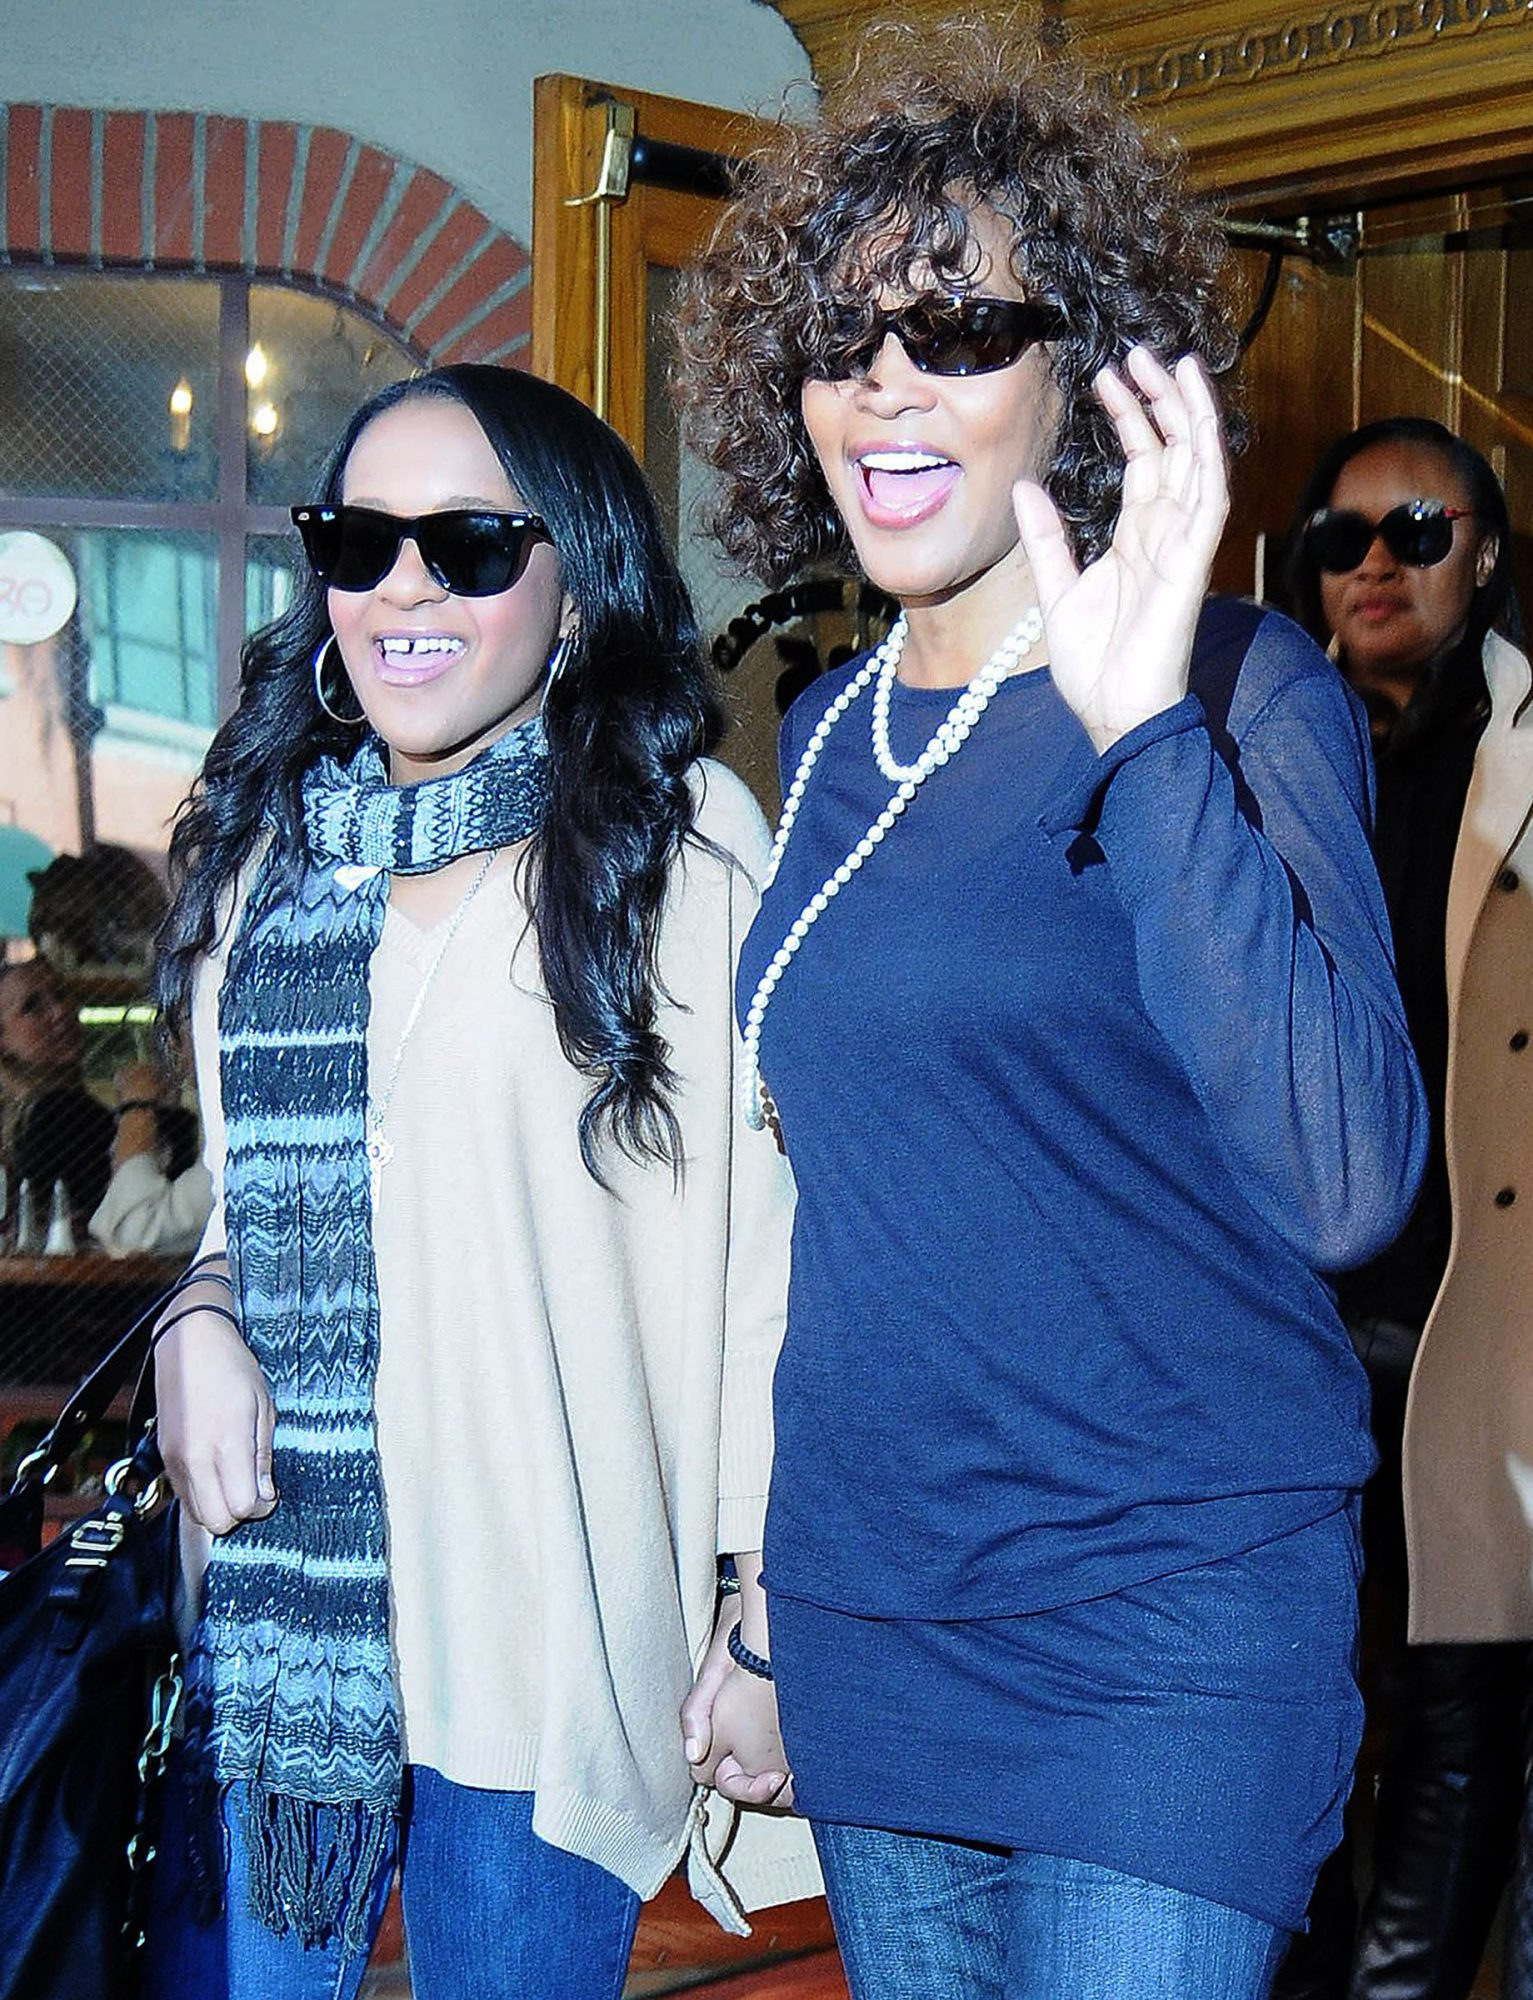 Whitney Houston and daughter Bobbi Kristina Brown leaving the Medical Building in Beverly Hills, Los Angeles, America - 09 Feb 2011